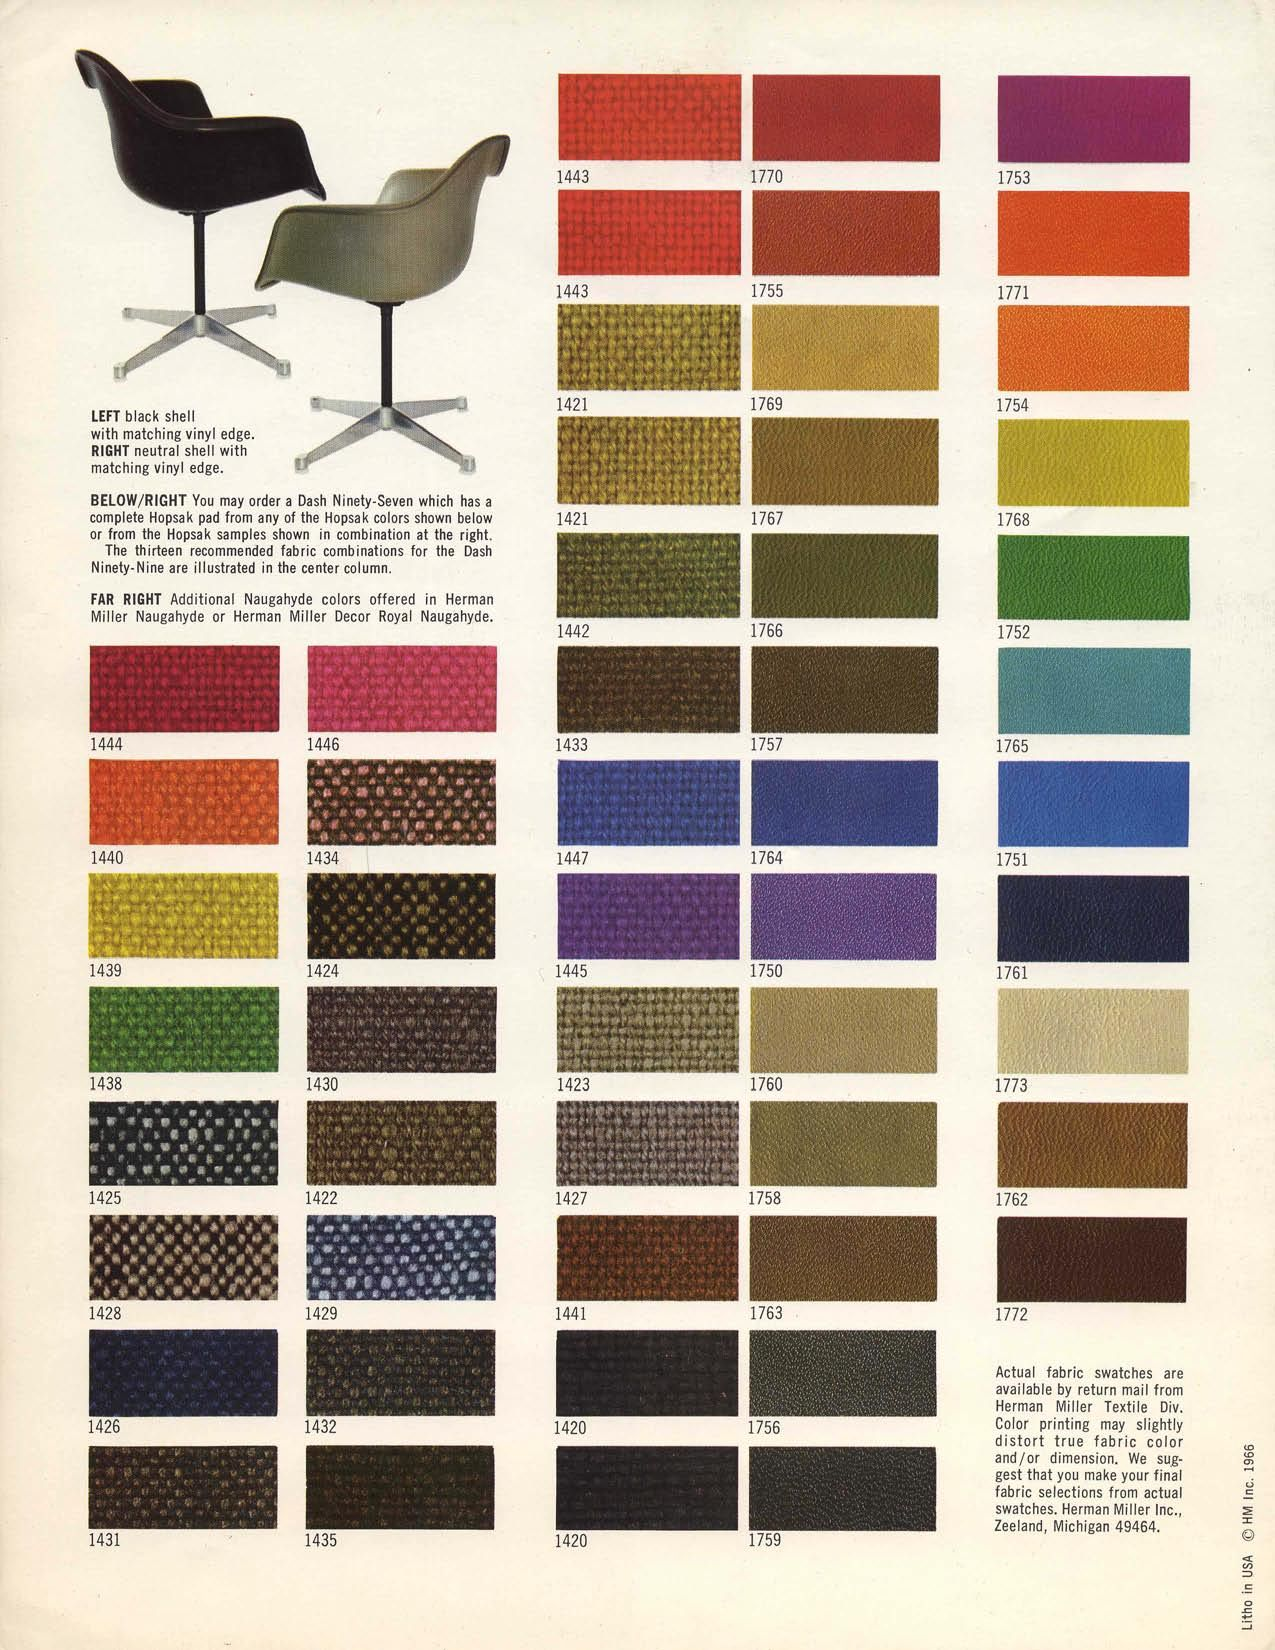 Vintage product literature for classic Eames products, featuring textiles by Alexander Girard